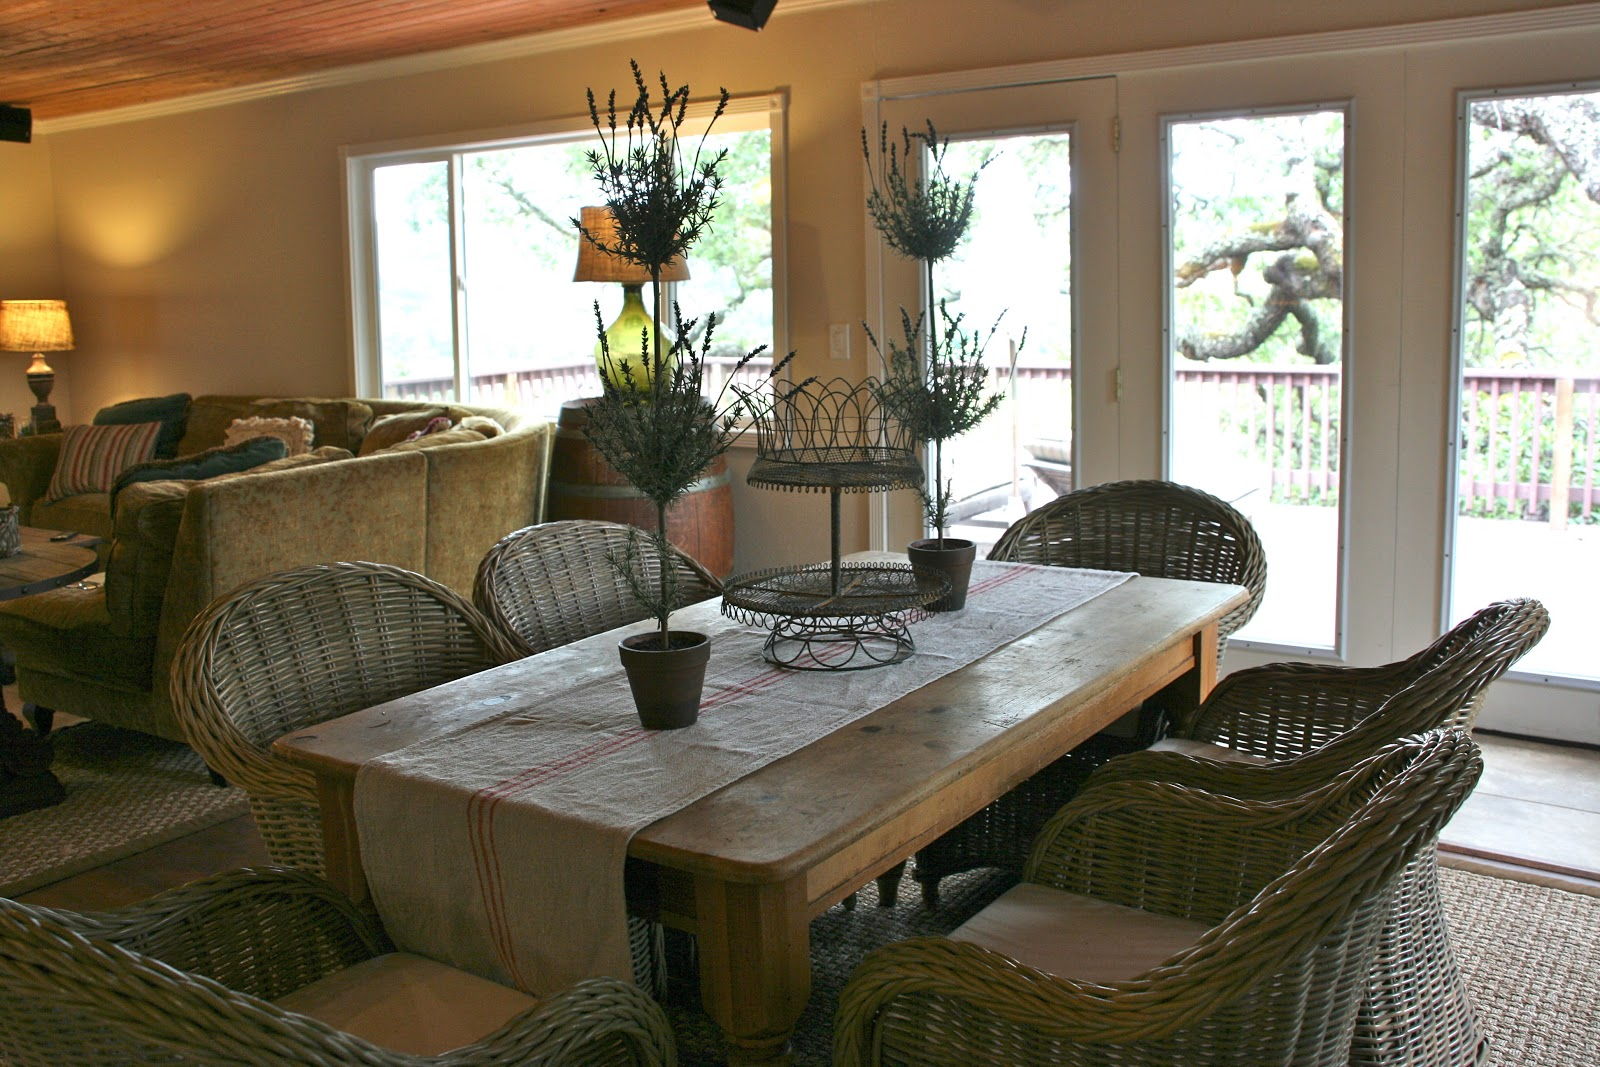 Vignette design a wine country vacation rental part three for Wine country decorating style